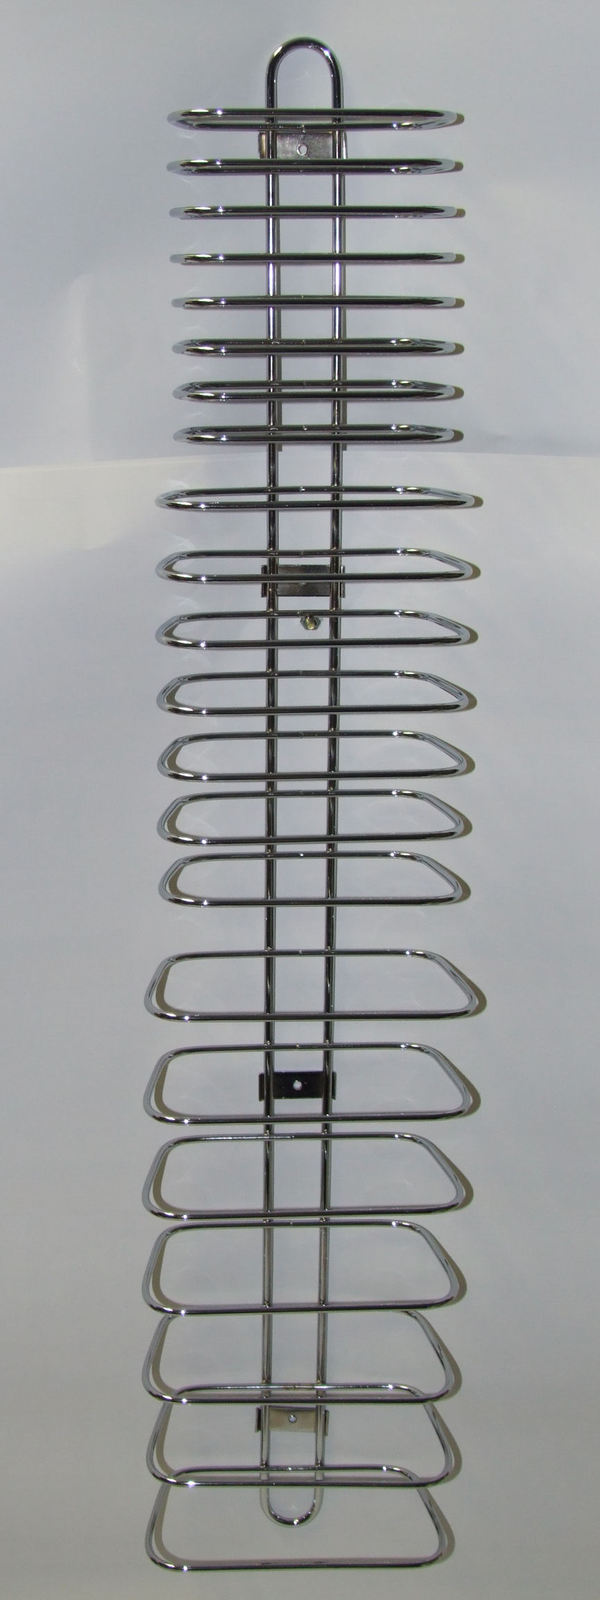 21  TOWEL RACK FOR HOTELS OR  BATH ROOMS OR POOLS